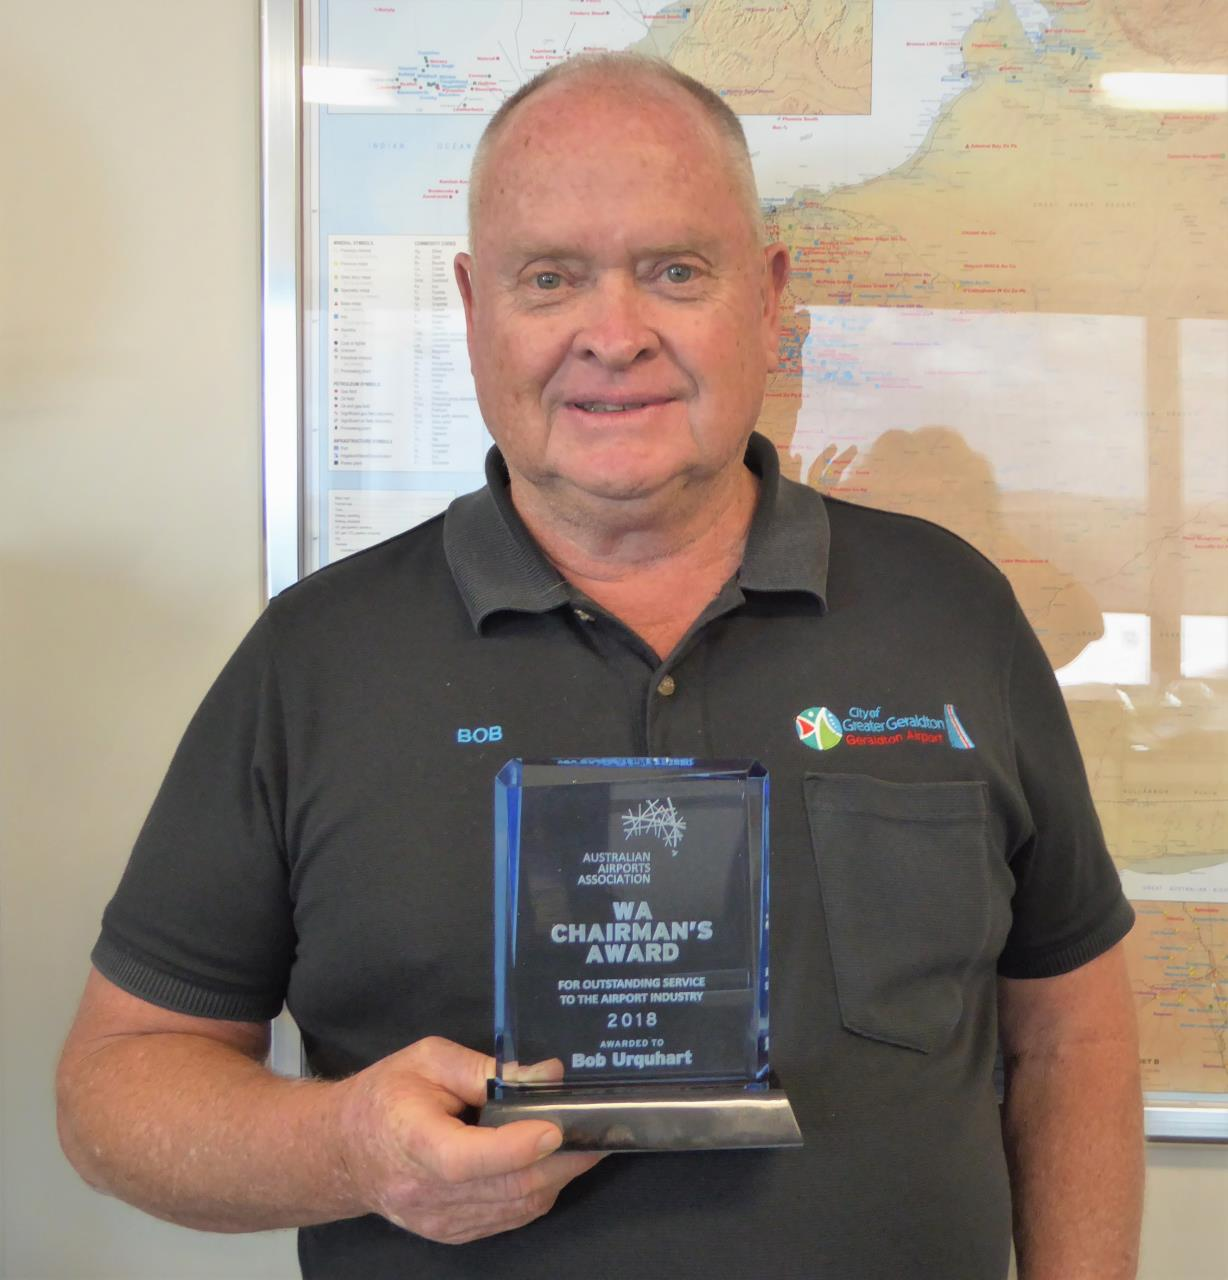 Airport Manager awarded for outstanding service